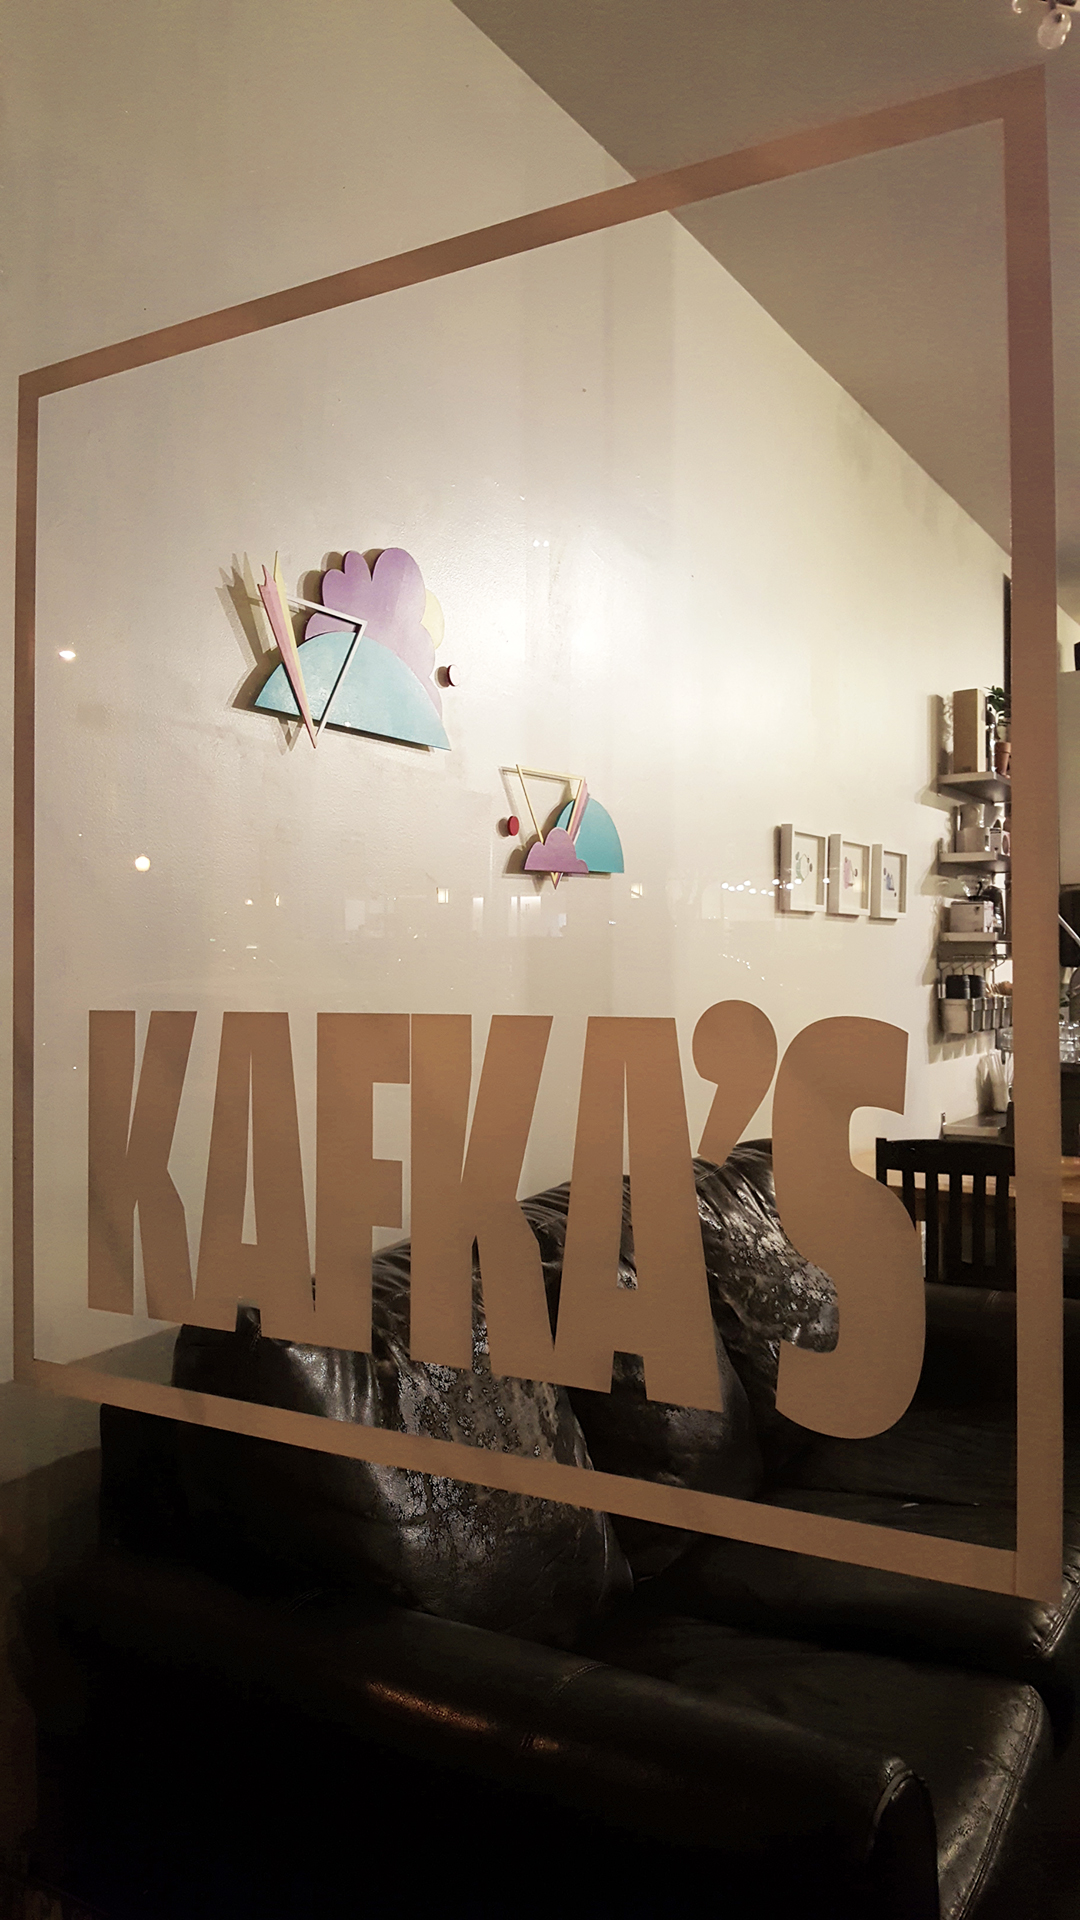 I've Gazed Along the Open Road, #1 & #2  installed at Kafka's on Main Street, Vancouver